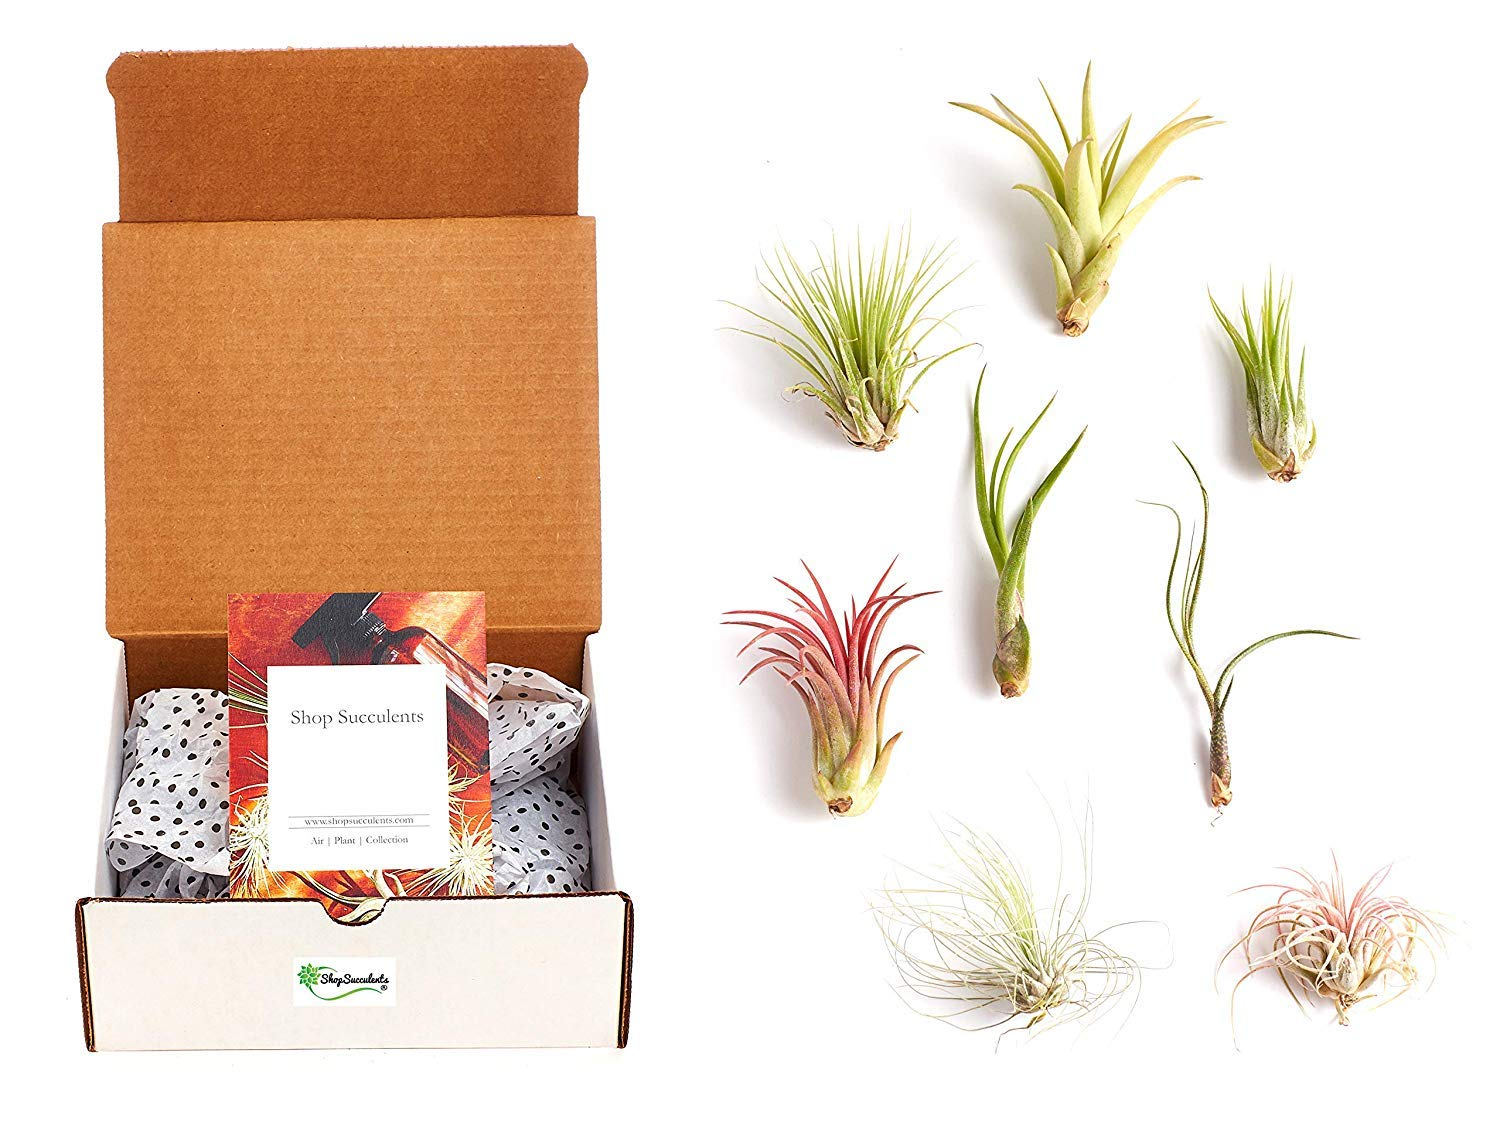 6 Live Air Plant Variety Pack | Tillandsia Air Plant Terrarium Kit with Free Amber Spray Bottle Mister for Water or Air Plant Fertilizer | Assorted Species Air Plant Kit